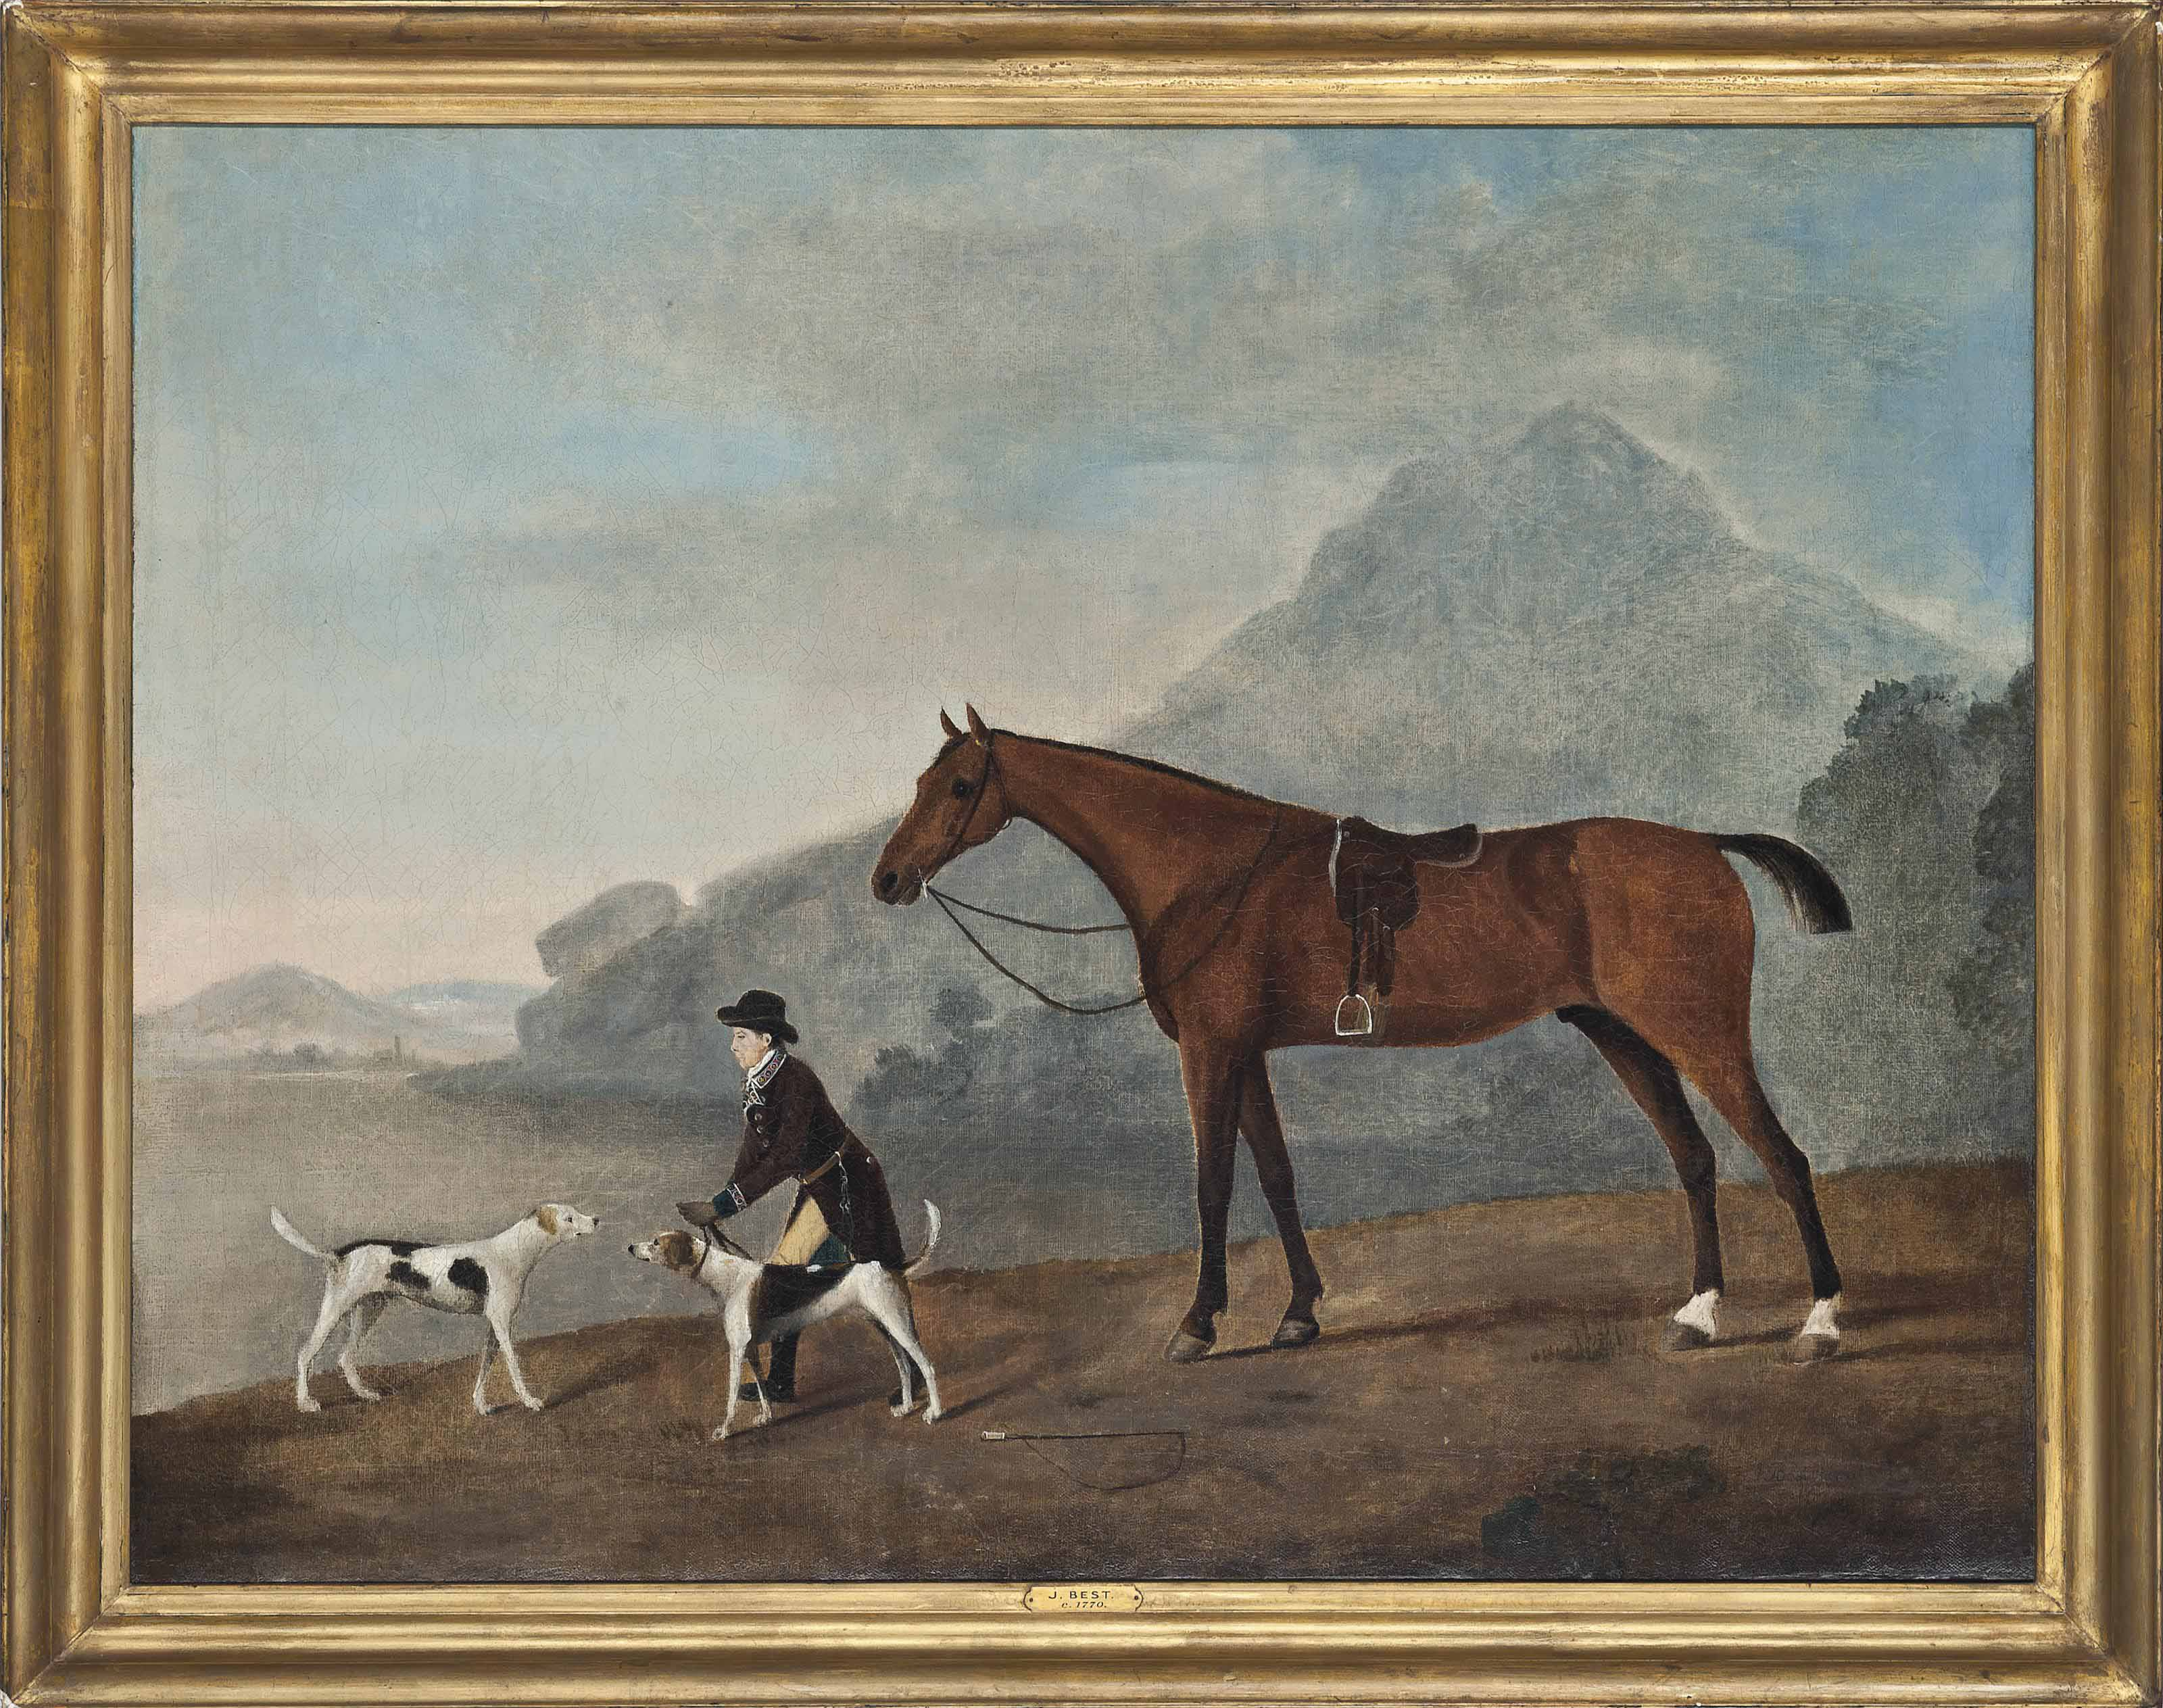 A hunstman with two hounds, with his horse, in a mountainous landscape